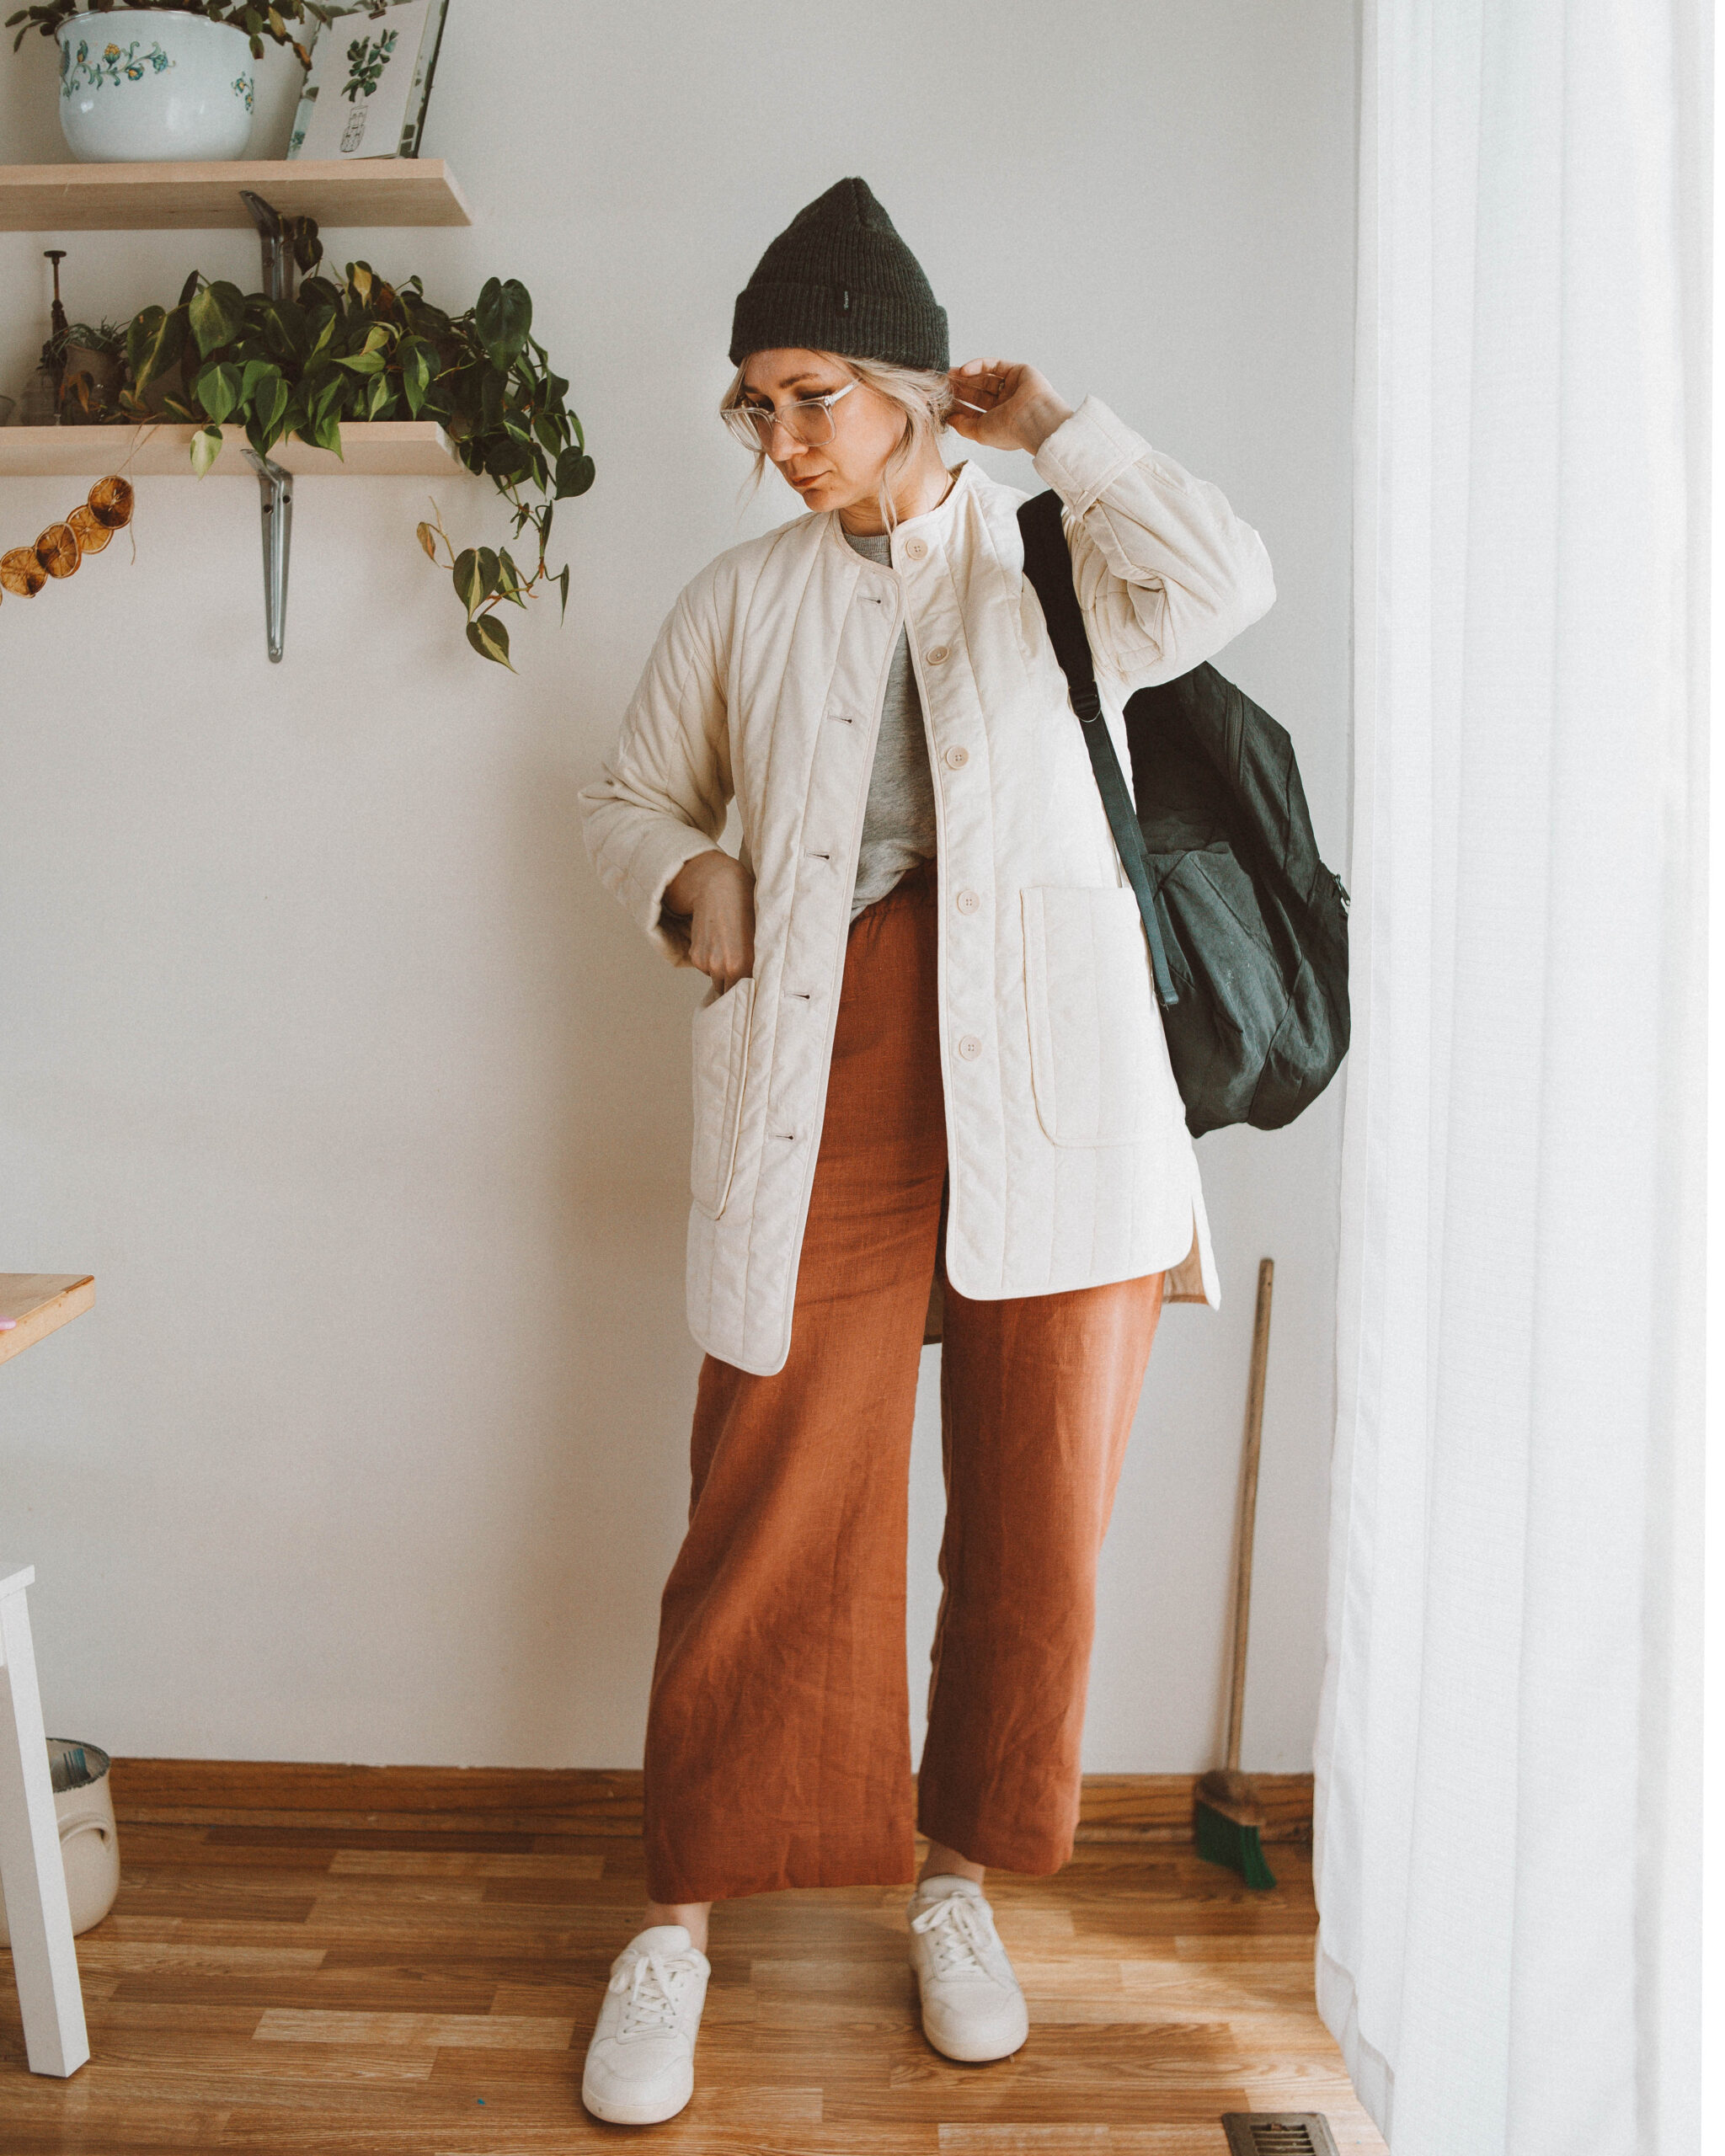 Week of Outfits: the Week of Hats and Sneakers